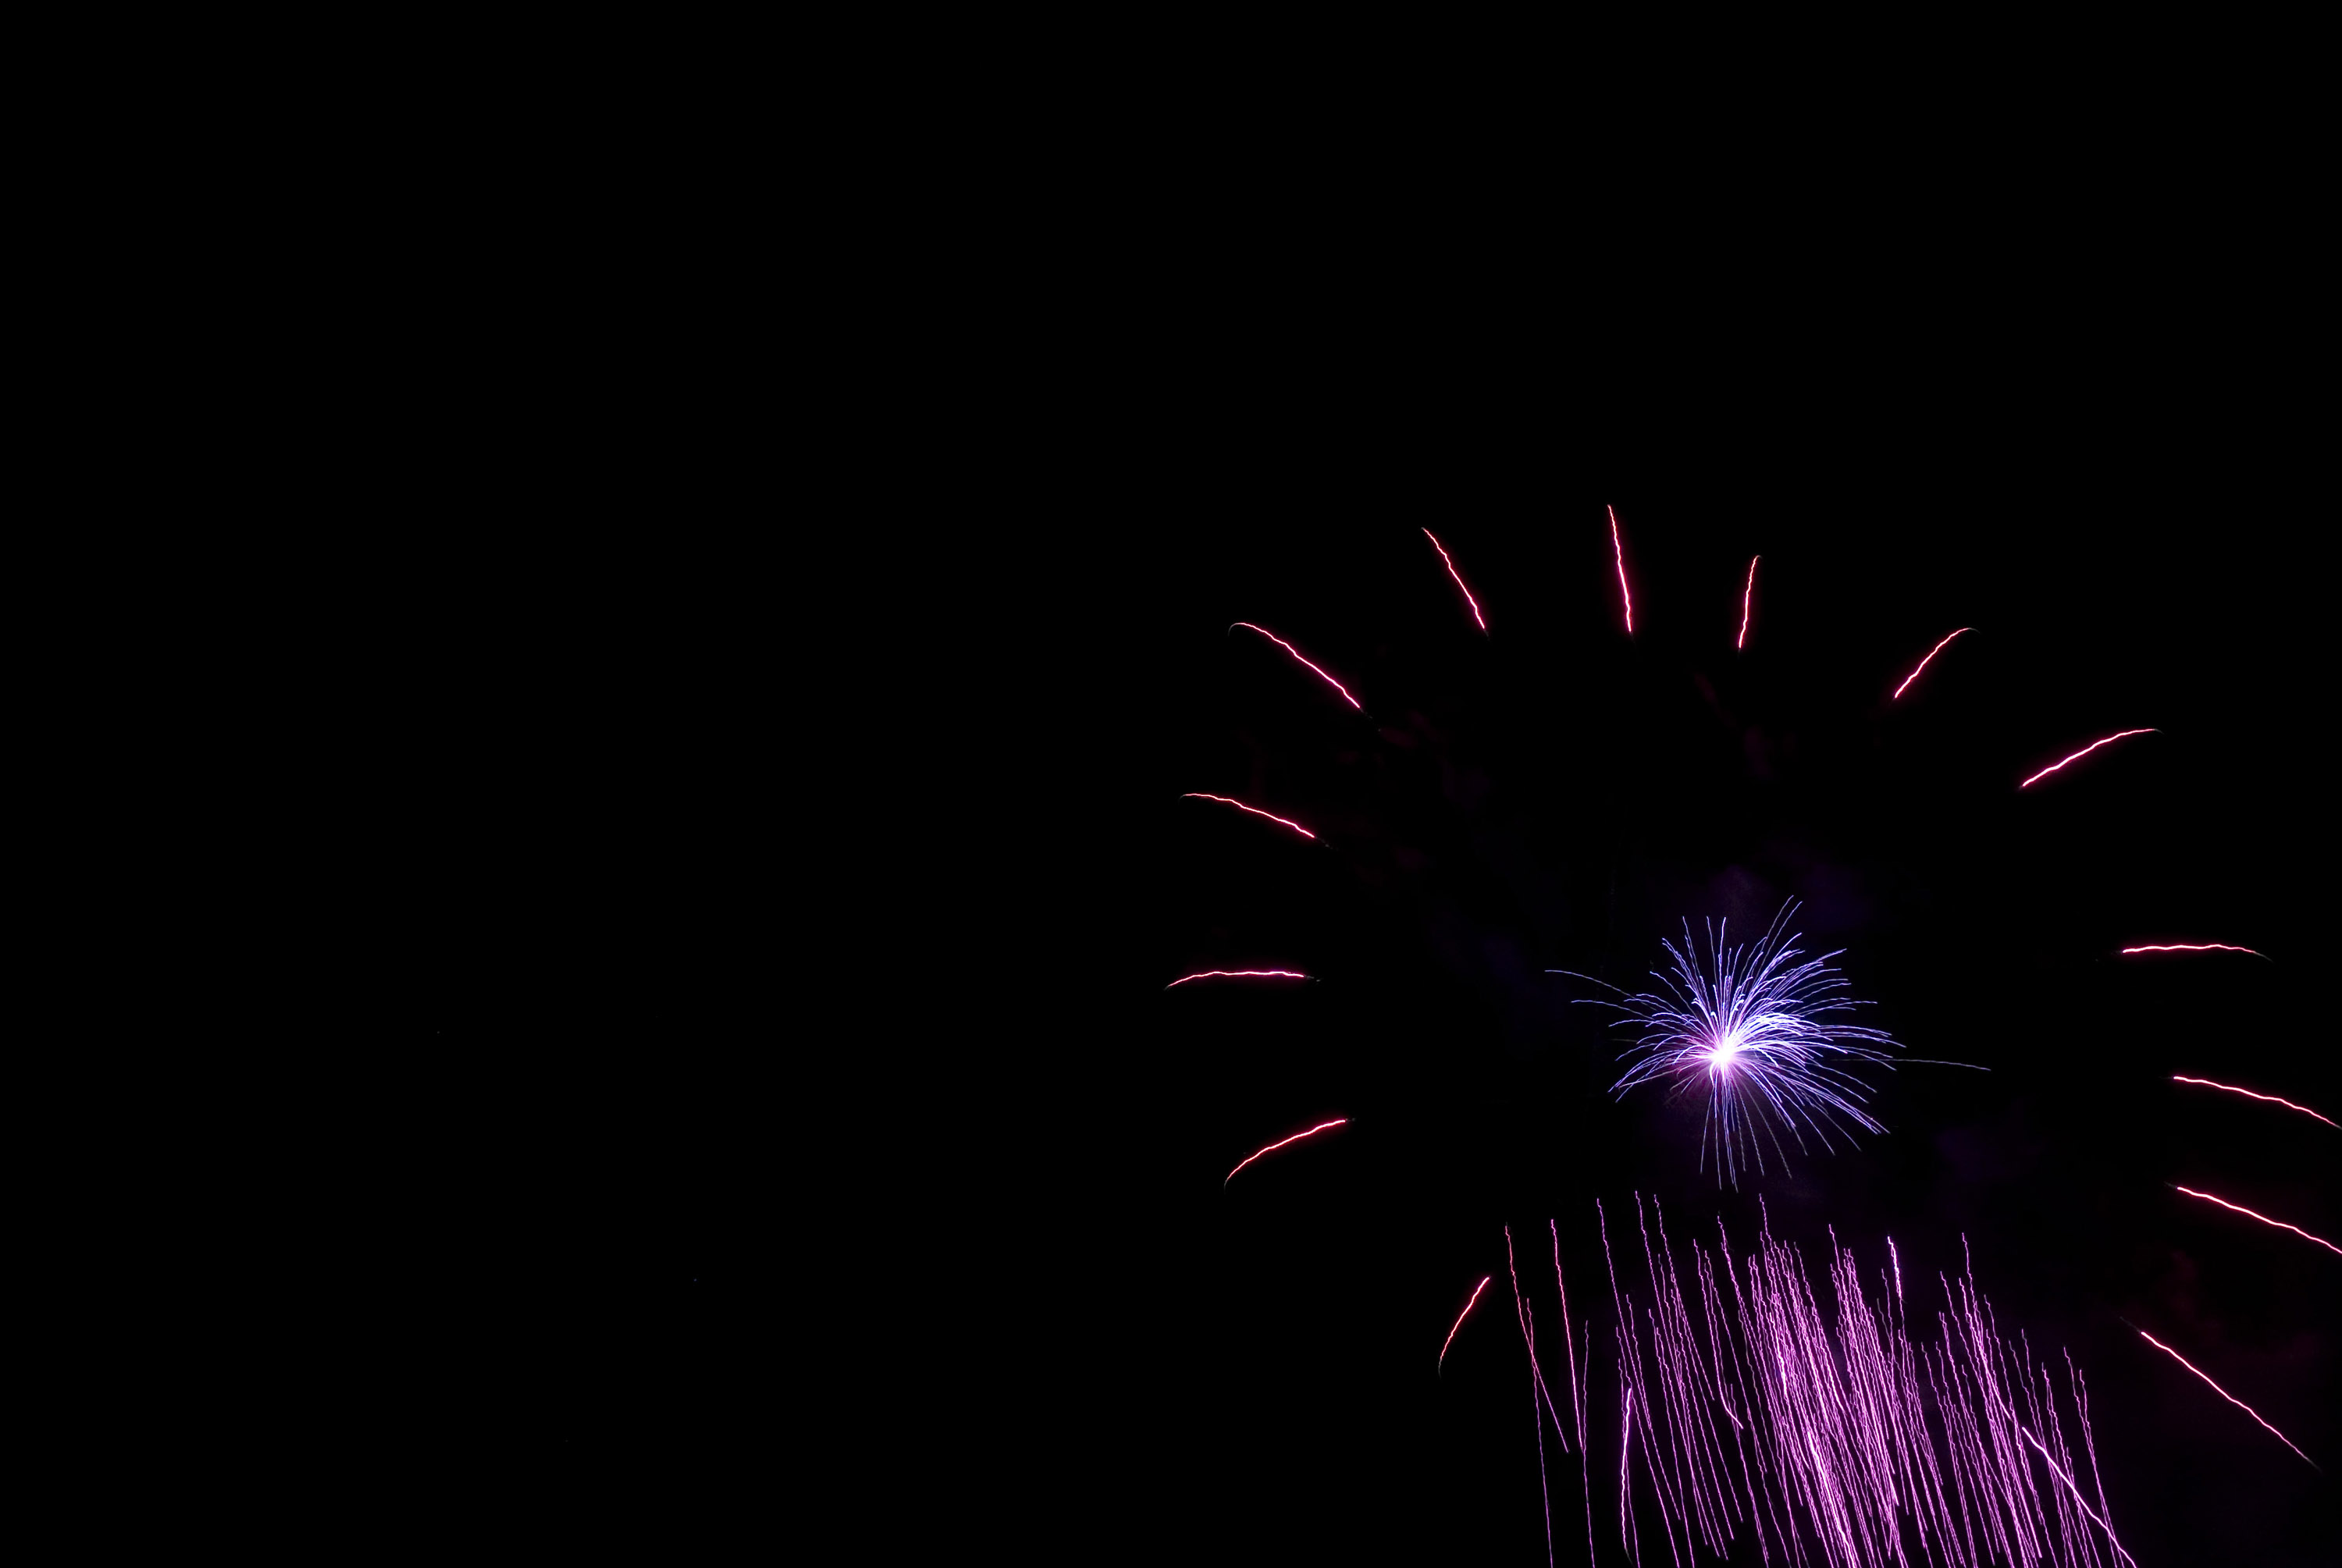 purple trails of light frozen in time as they explode from a firework rocket